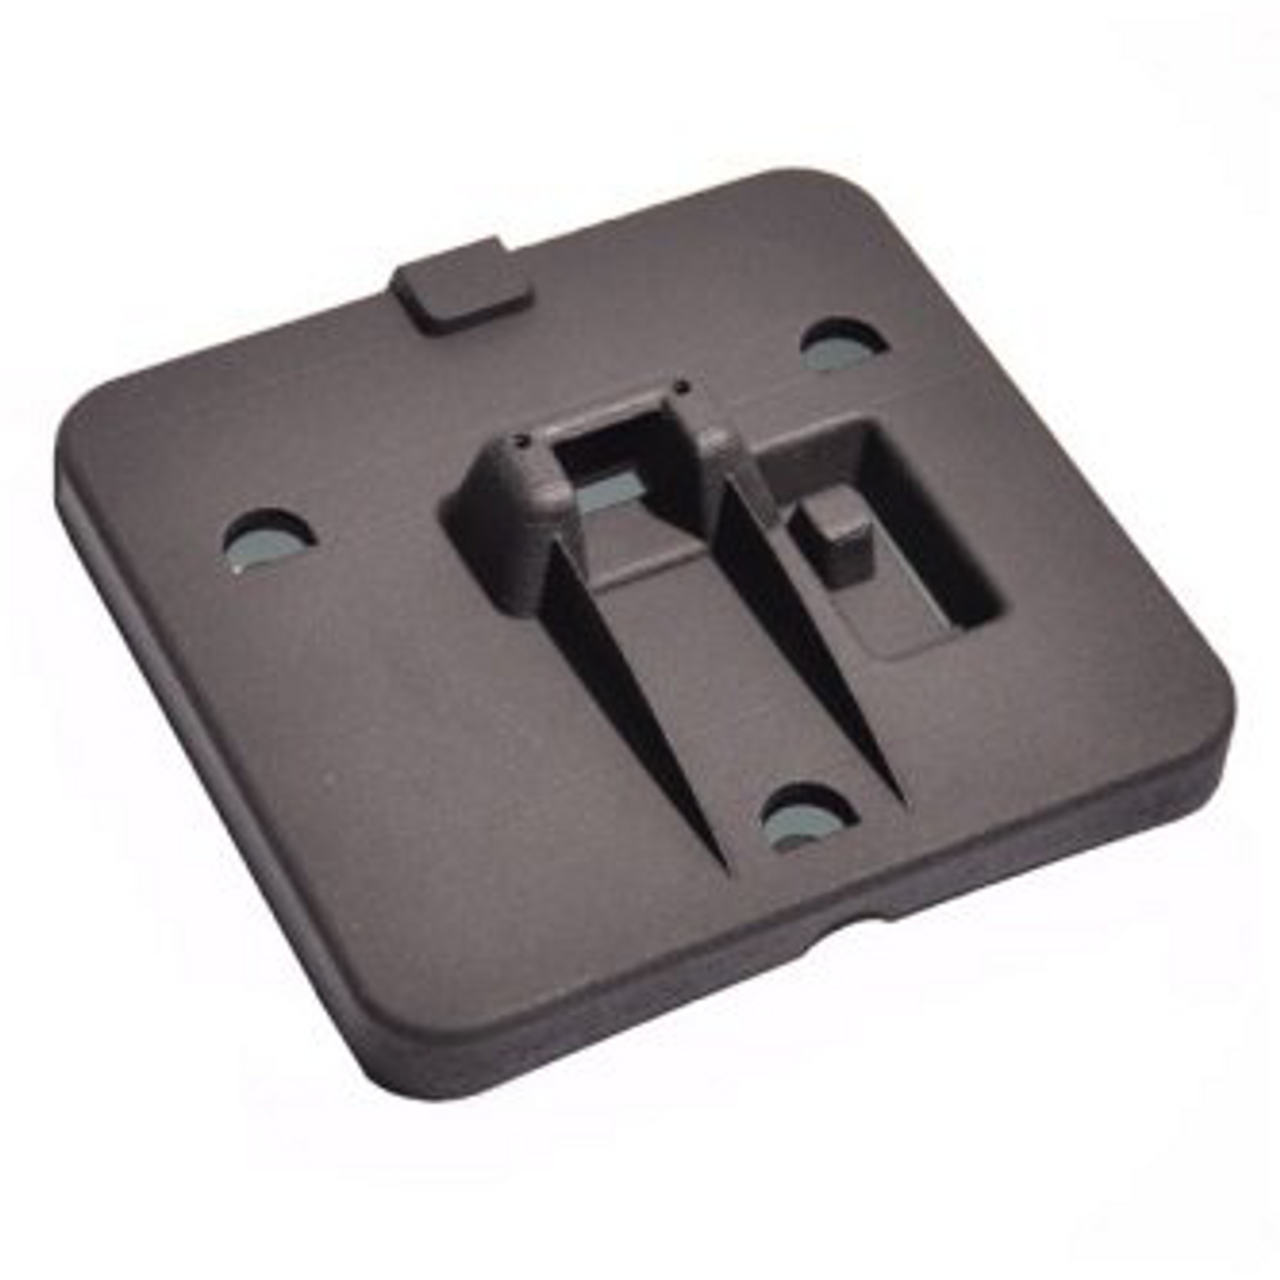 Ingenico iSC480 Backplate by Tailwind